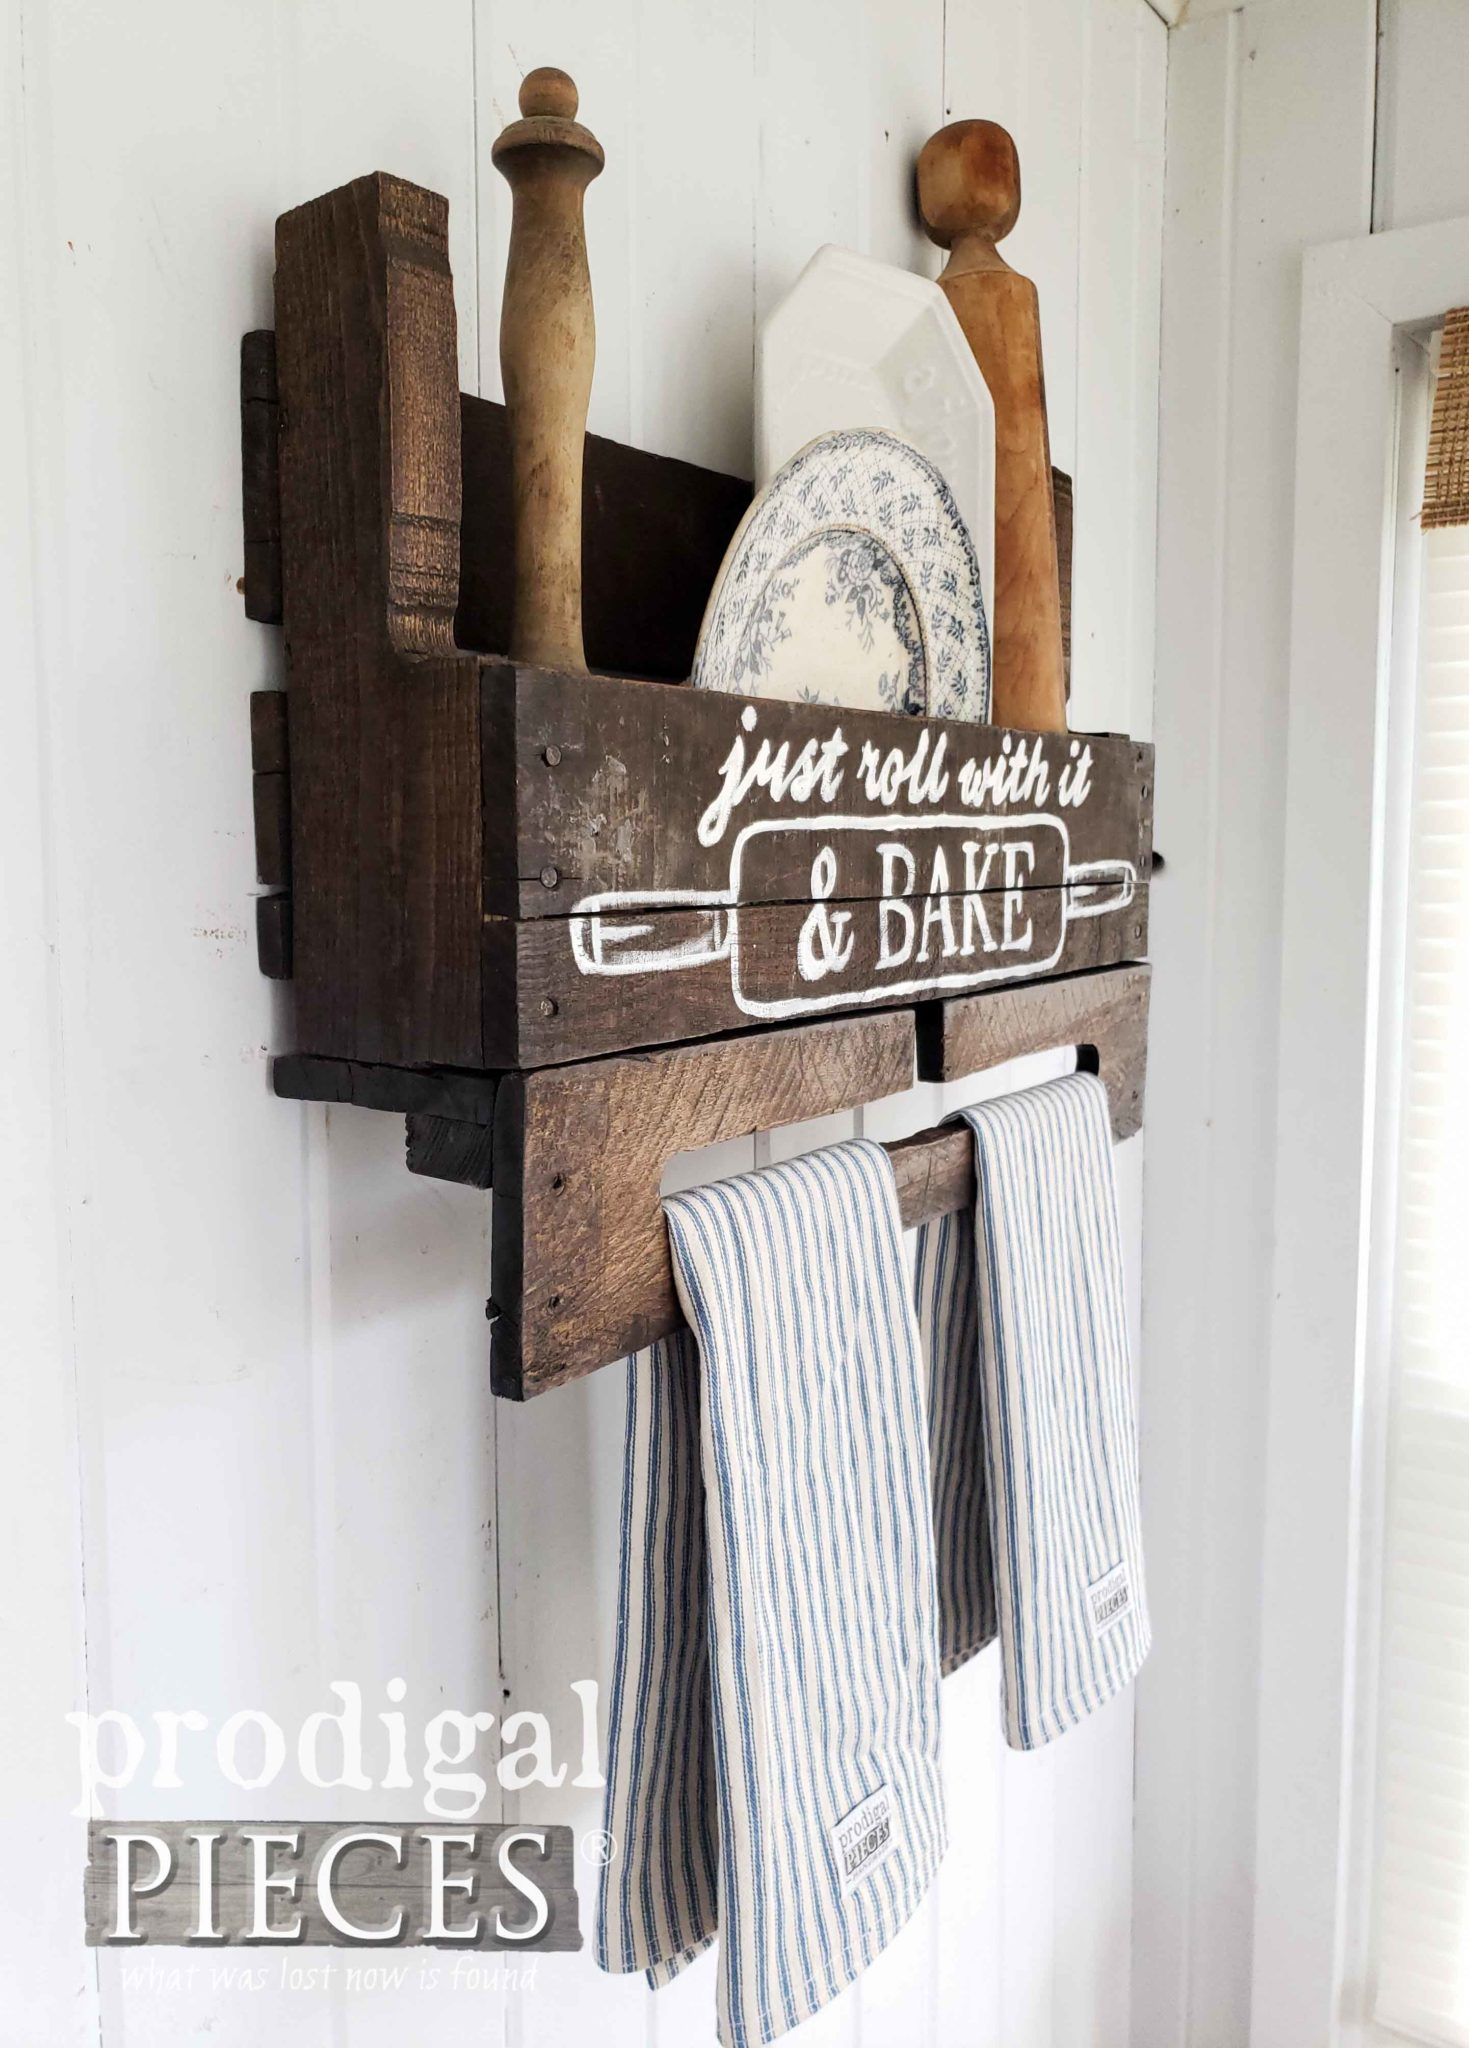 Rustic Farmhouse Style Baking Rack from an Upcycled Pallet | details at prodigalpieces.com #prodigalpieces #diy #farmhouse #handmade #home #homedecor